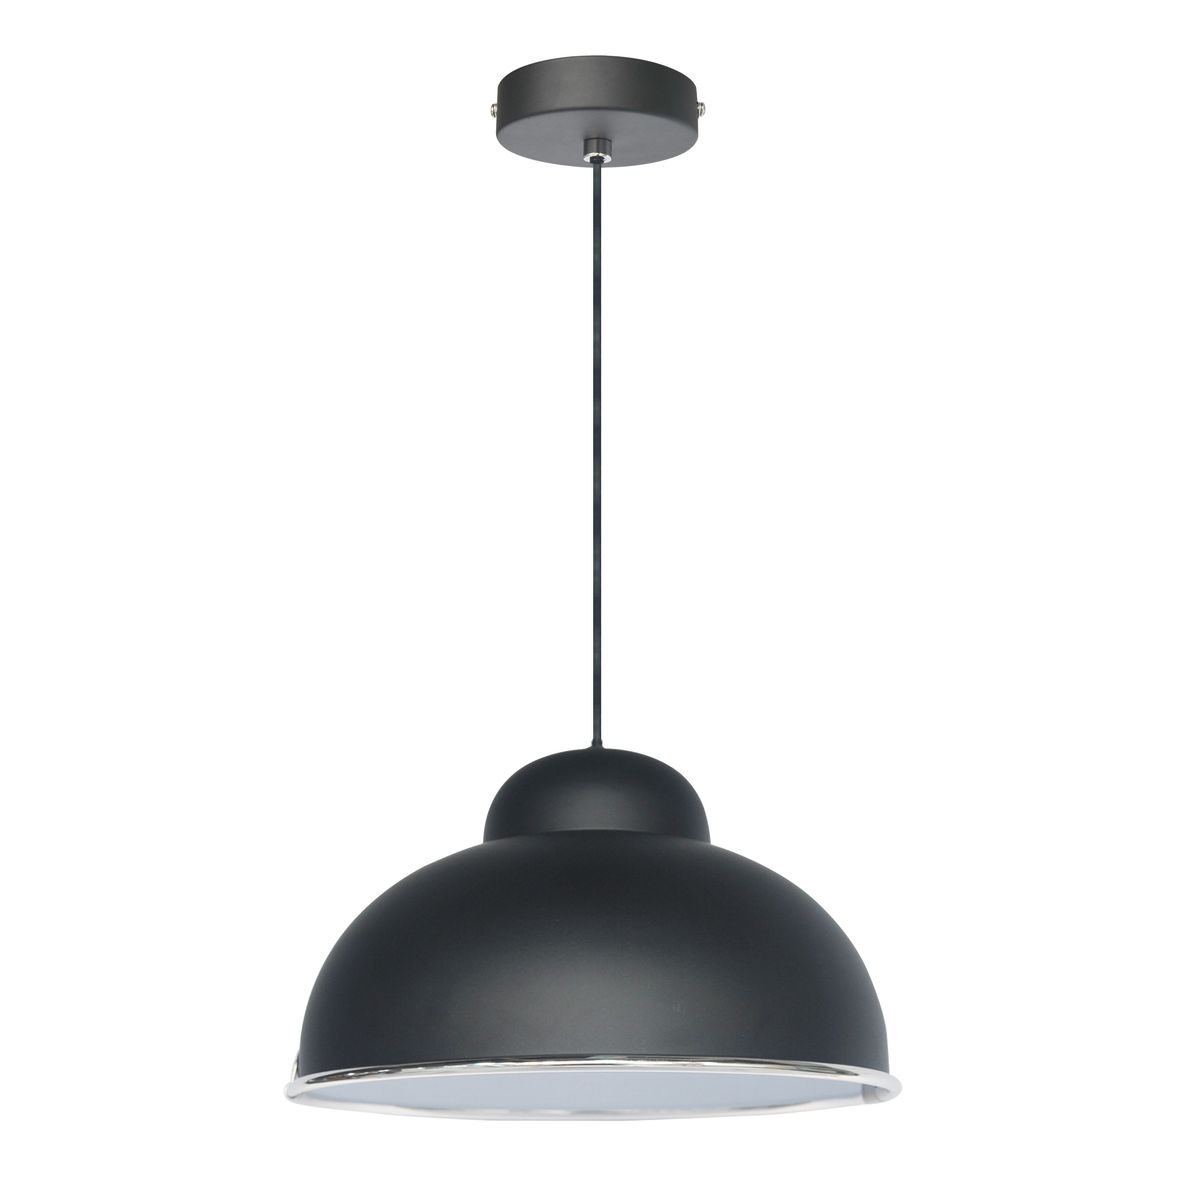 Awesome lampadari cucina leroy merlin contemporary home - Lampade da esterno leroy merlin ...